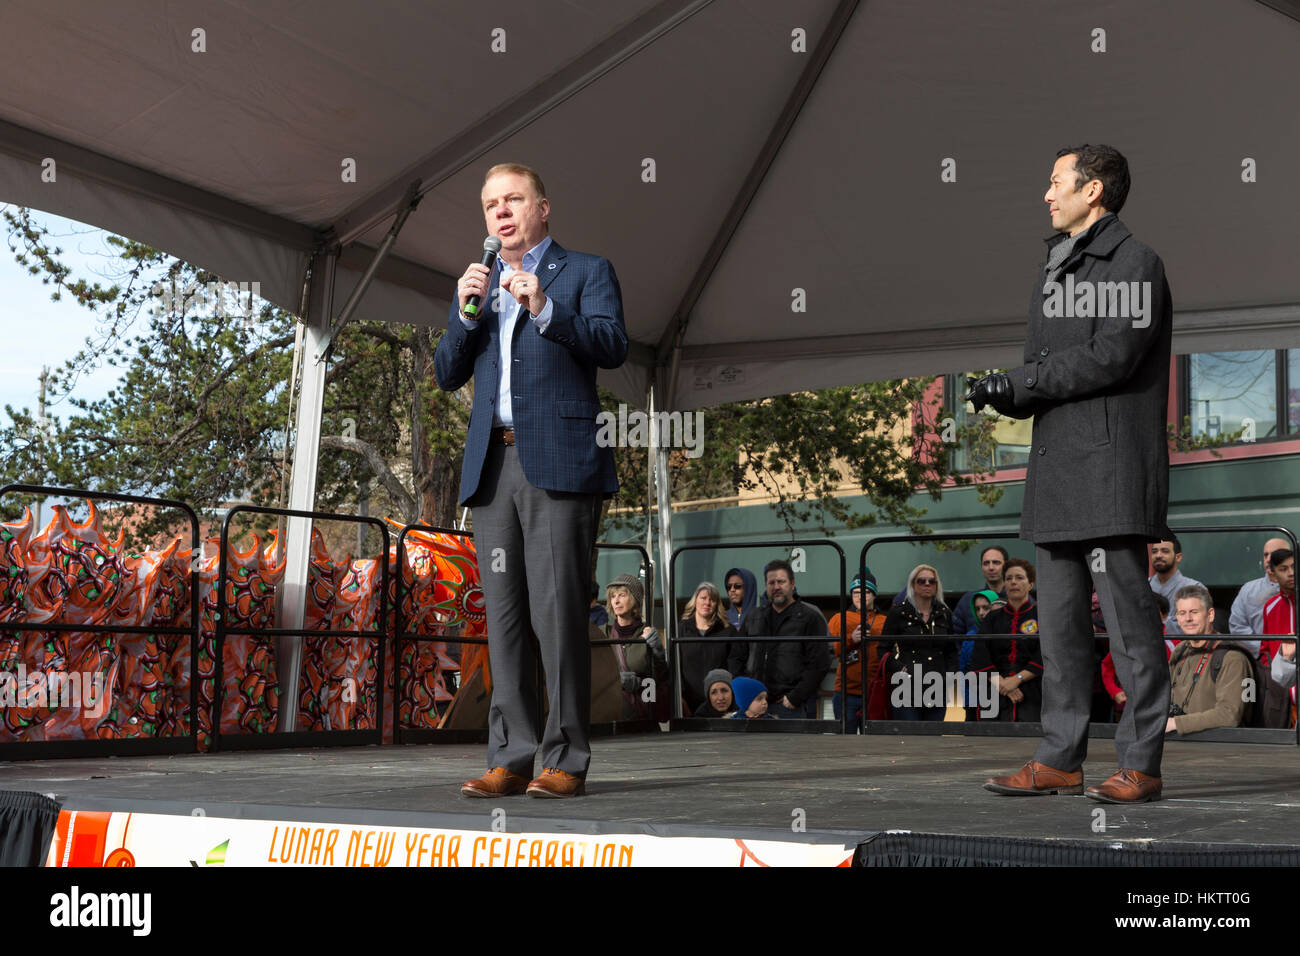 Seattle, USA. 29th Jan 2017. Mayor Ed Murray appears with his husband Michael Shiosaki at the Lunar New Year Celebration - Stock Image